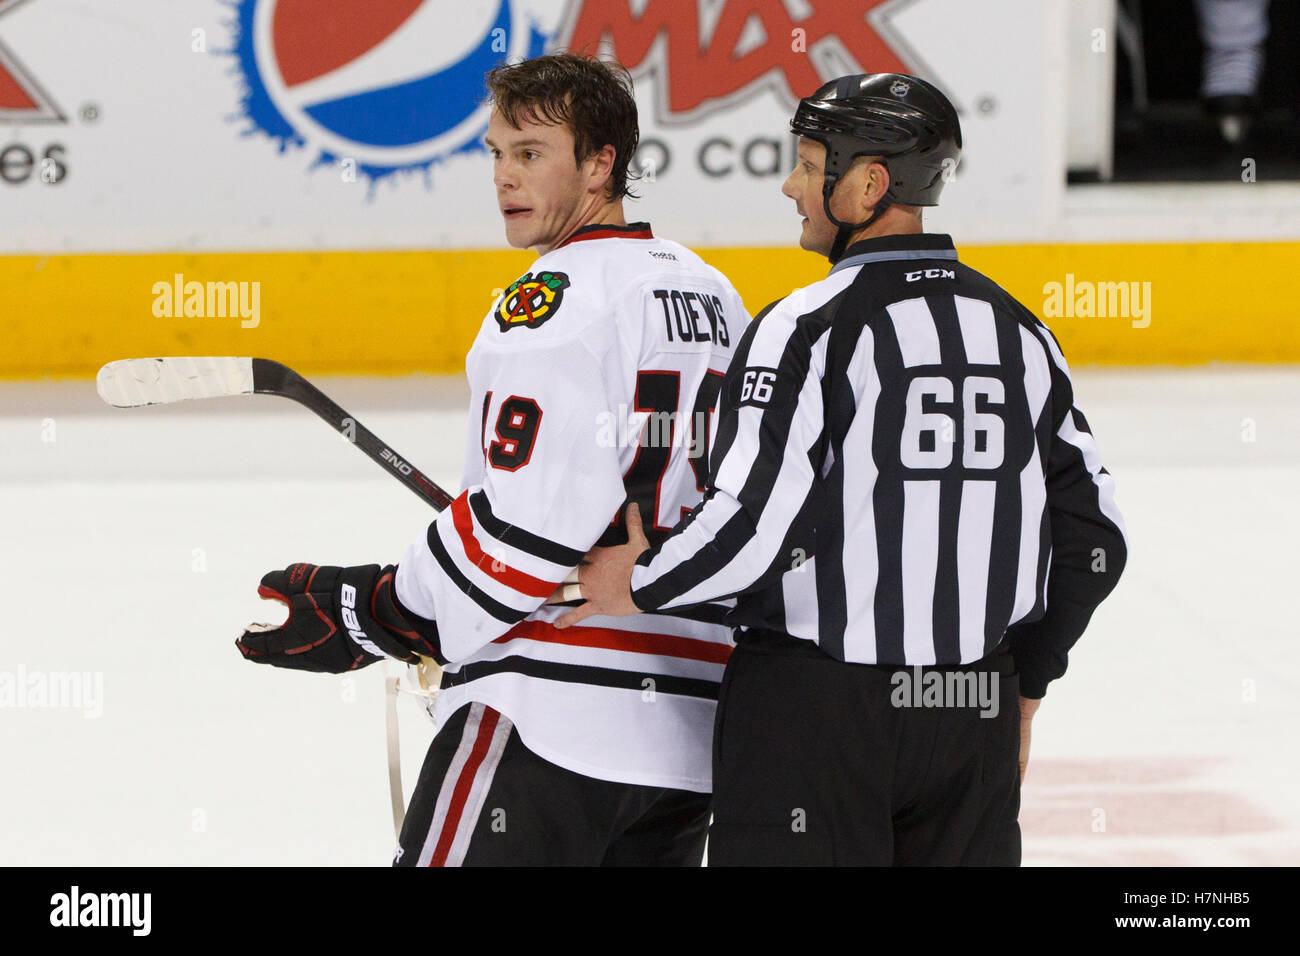 Feb 10, 2012; San Jose, CA, USA; Chicago Blackhawks center Jonathan Toews (19) is escorted by NHL linesman Darren - Stock Image